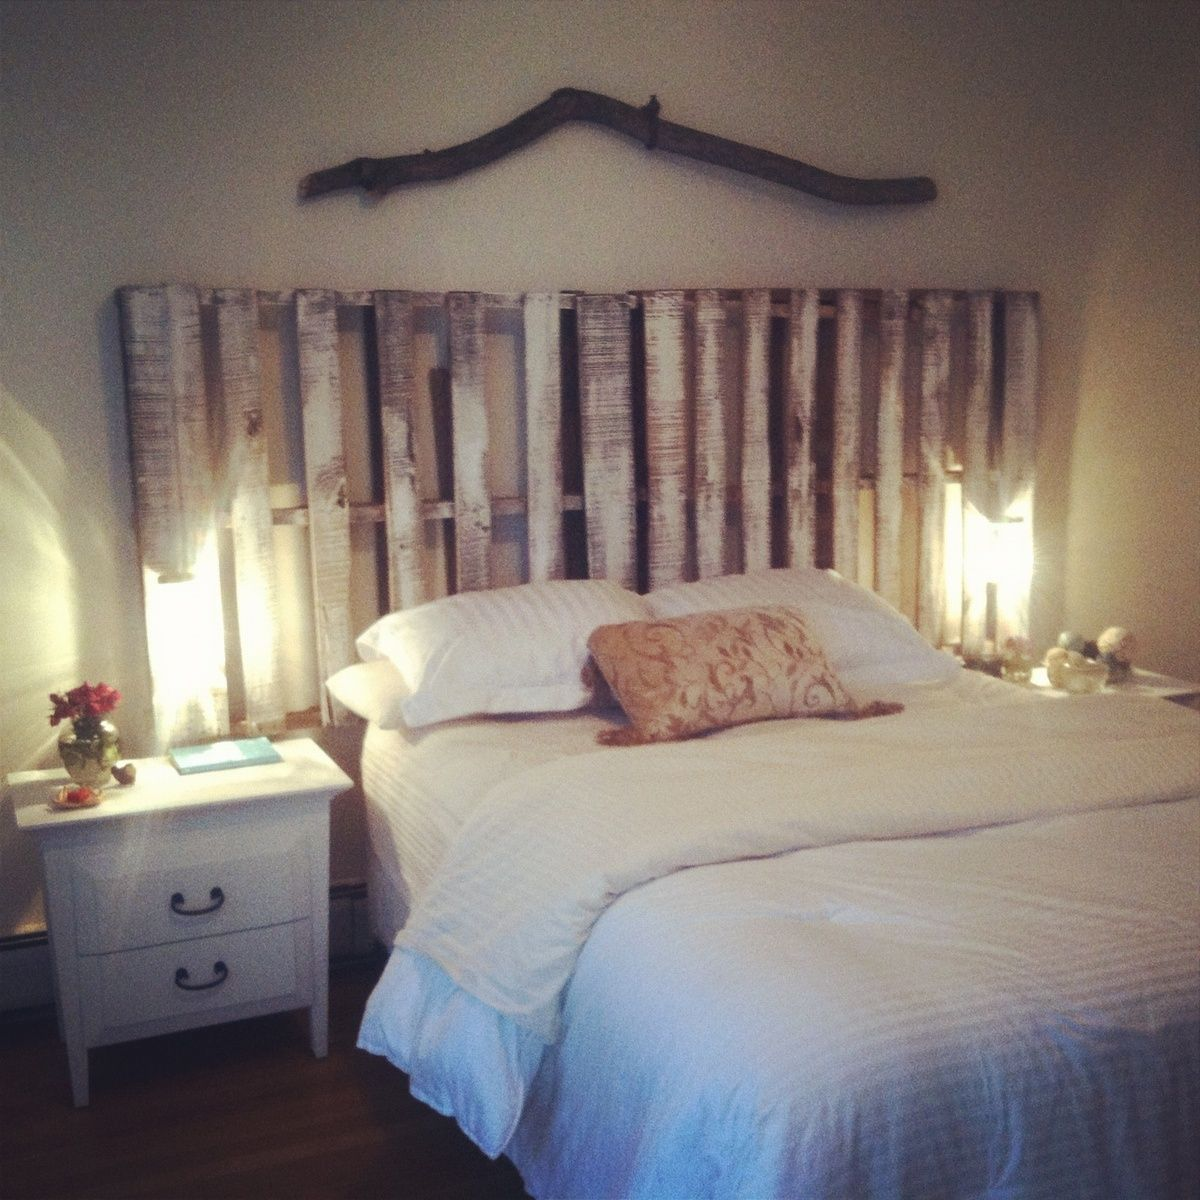 Diy Headboards, Pallett Headboard, Storage Headboard, Queen Headboard